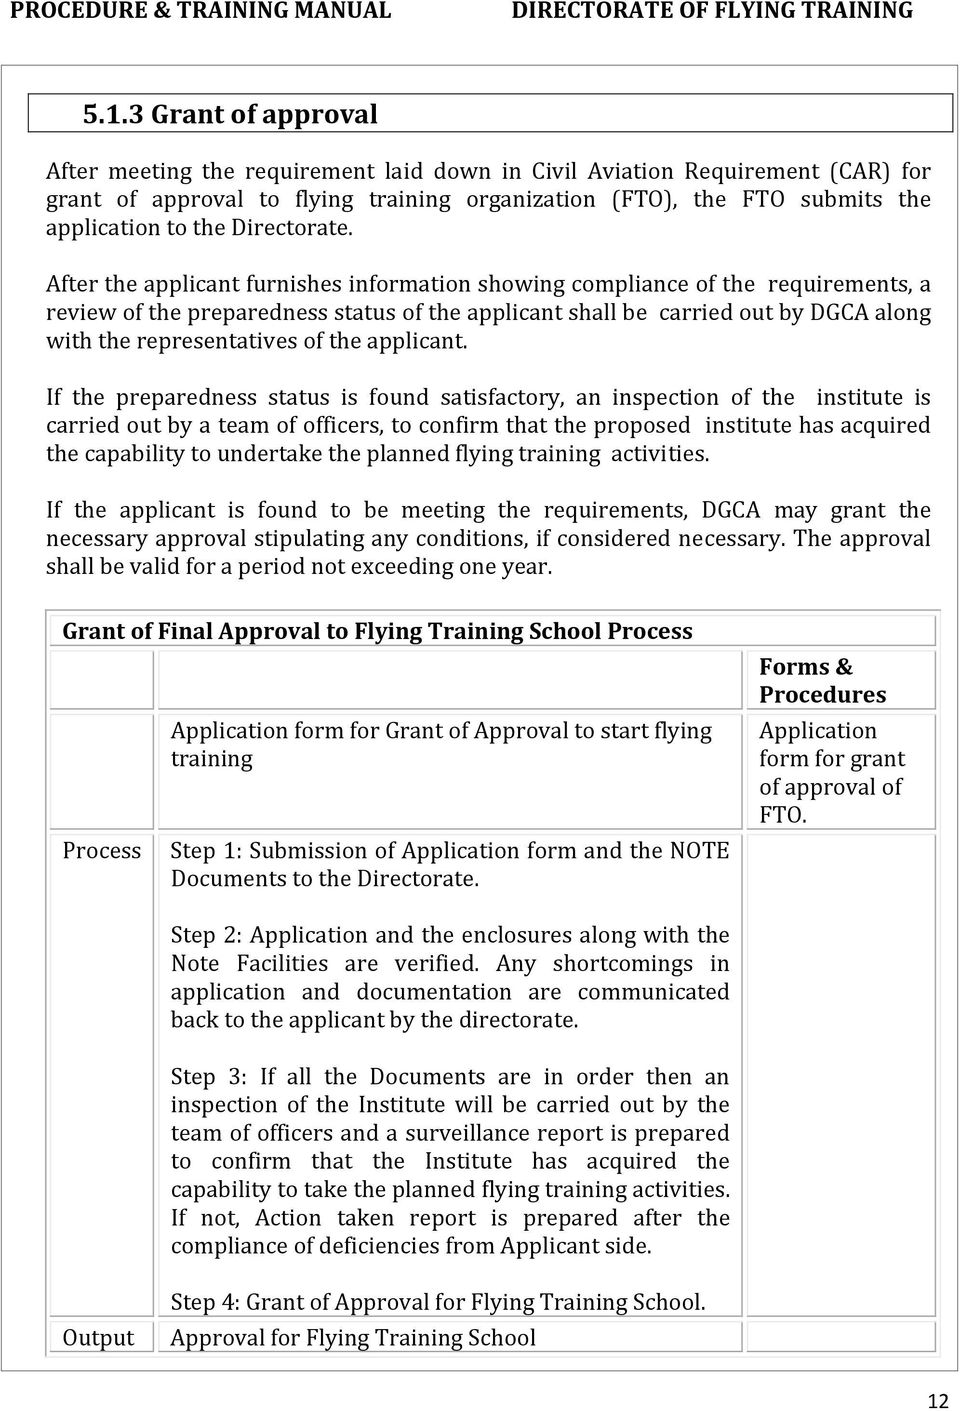 After the applicant furnishes information showing compliance of the requirements, a review of the preparedness status of the applicant shall be carried out by DGCA along with the representatives of